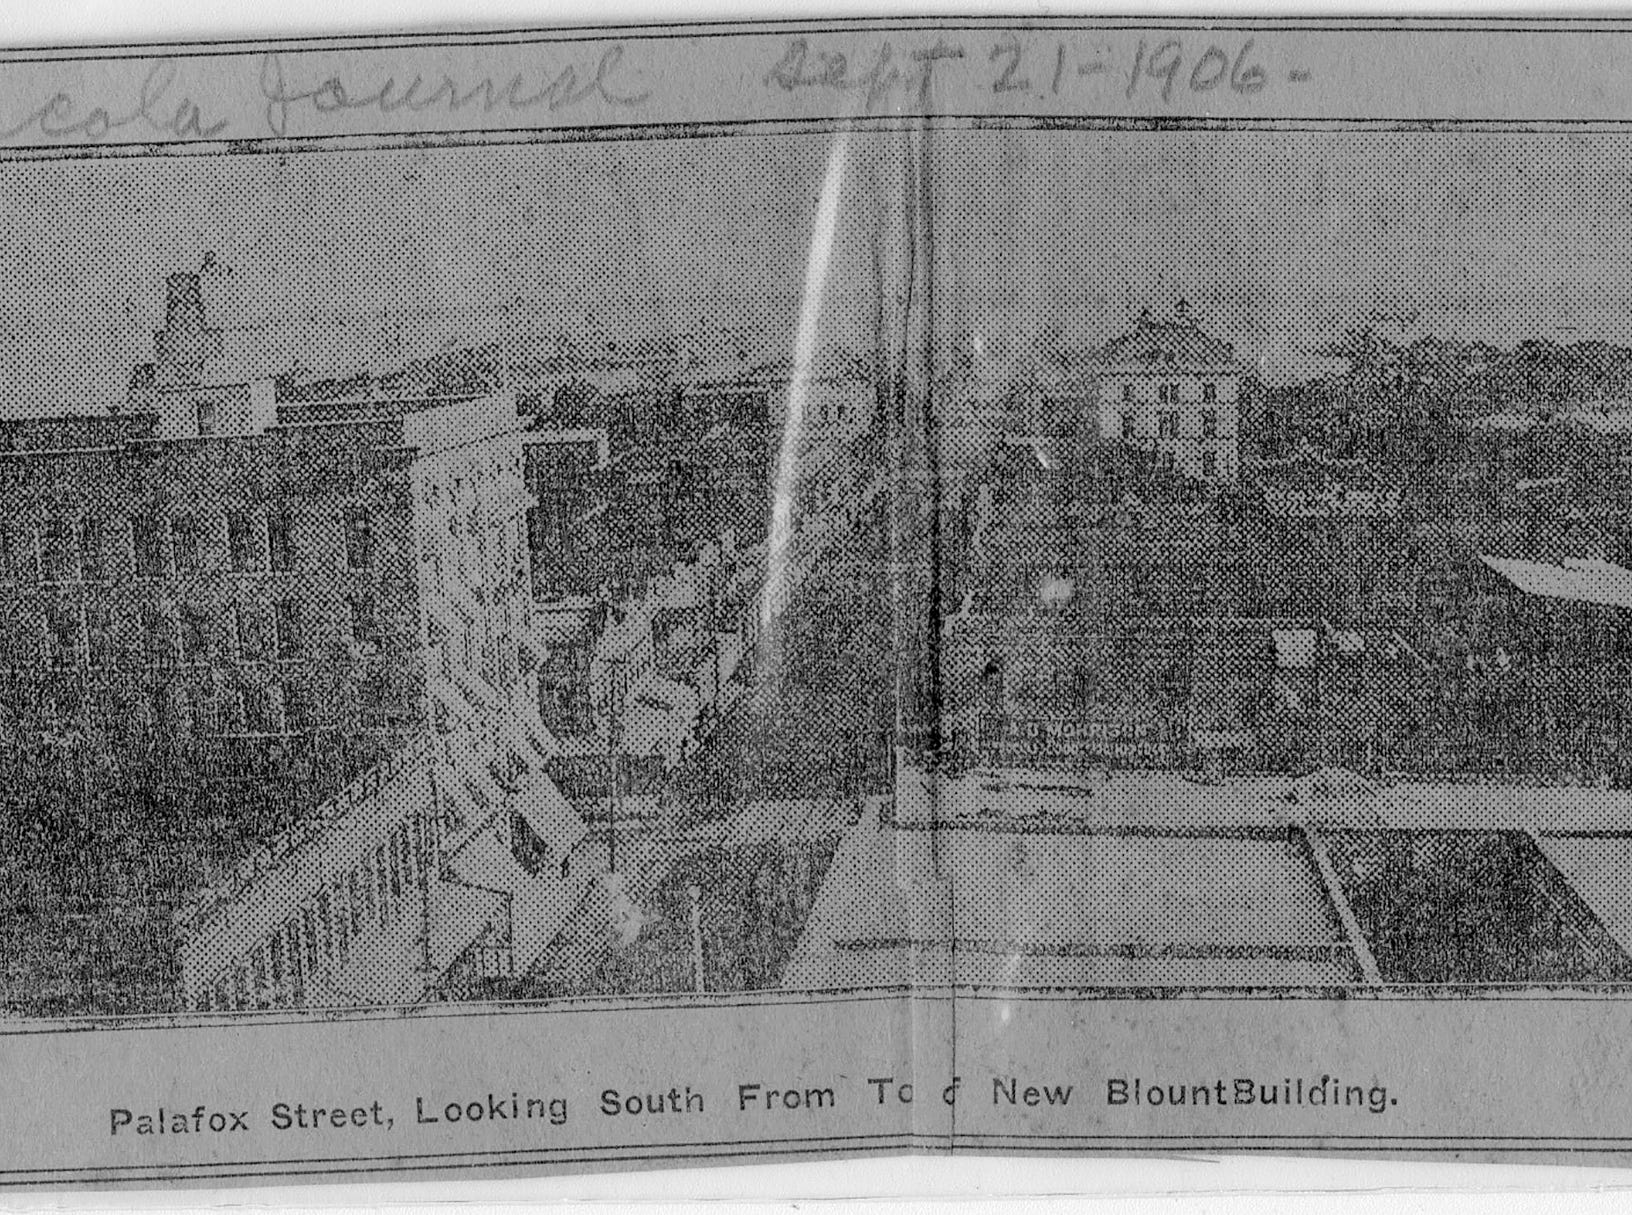 Newspaper clipping from Pensacola Journal, Sept. 21, 1906, of Palafox Street.